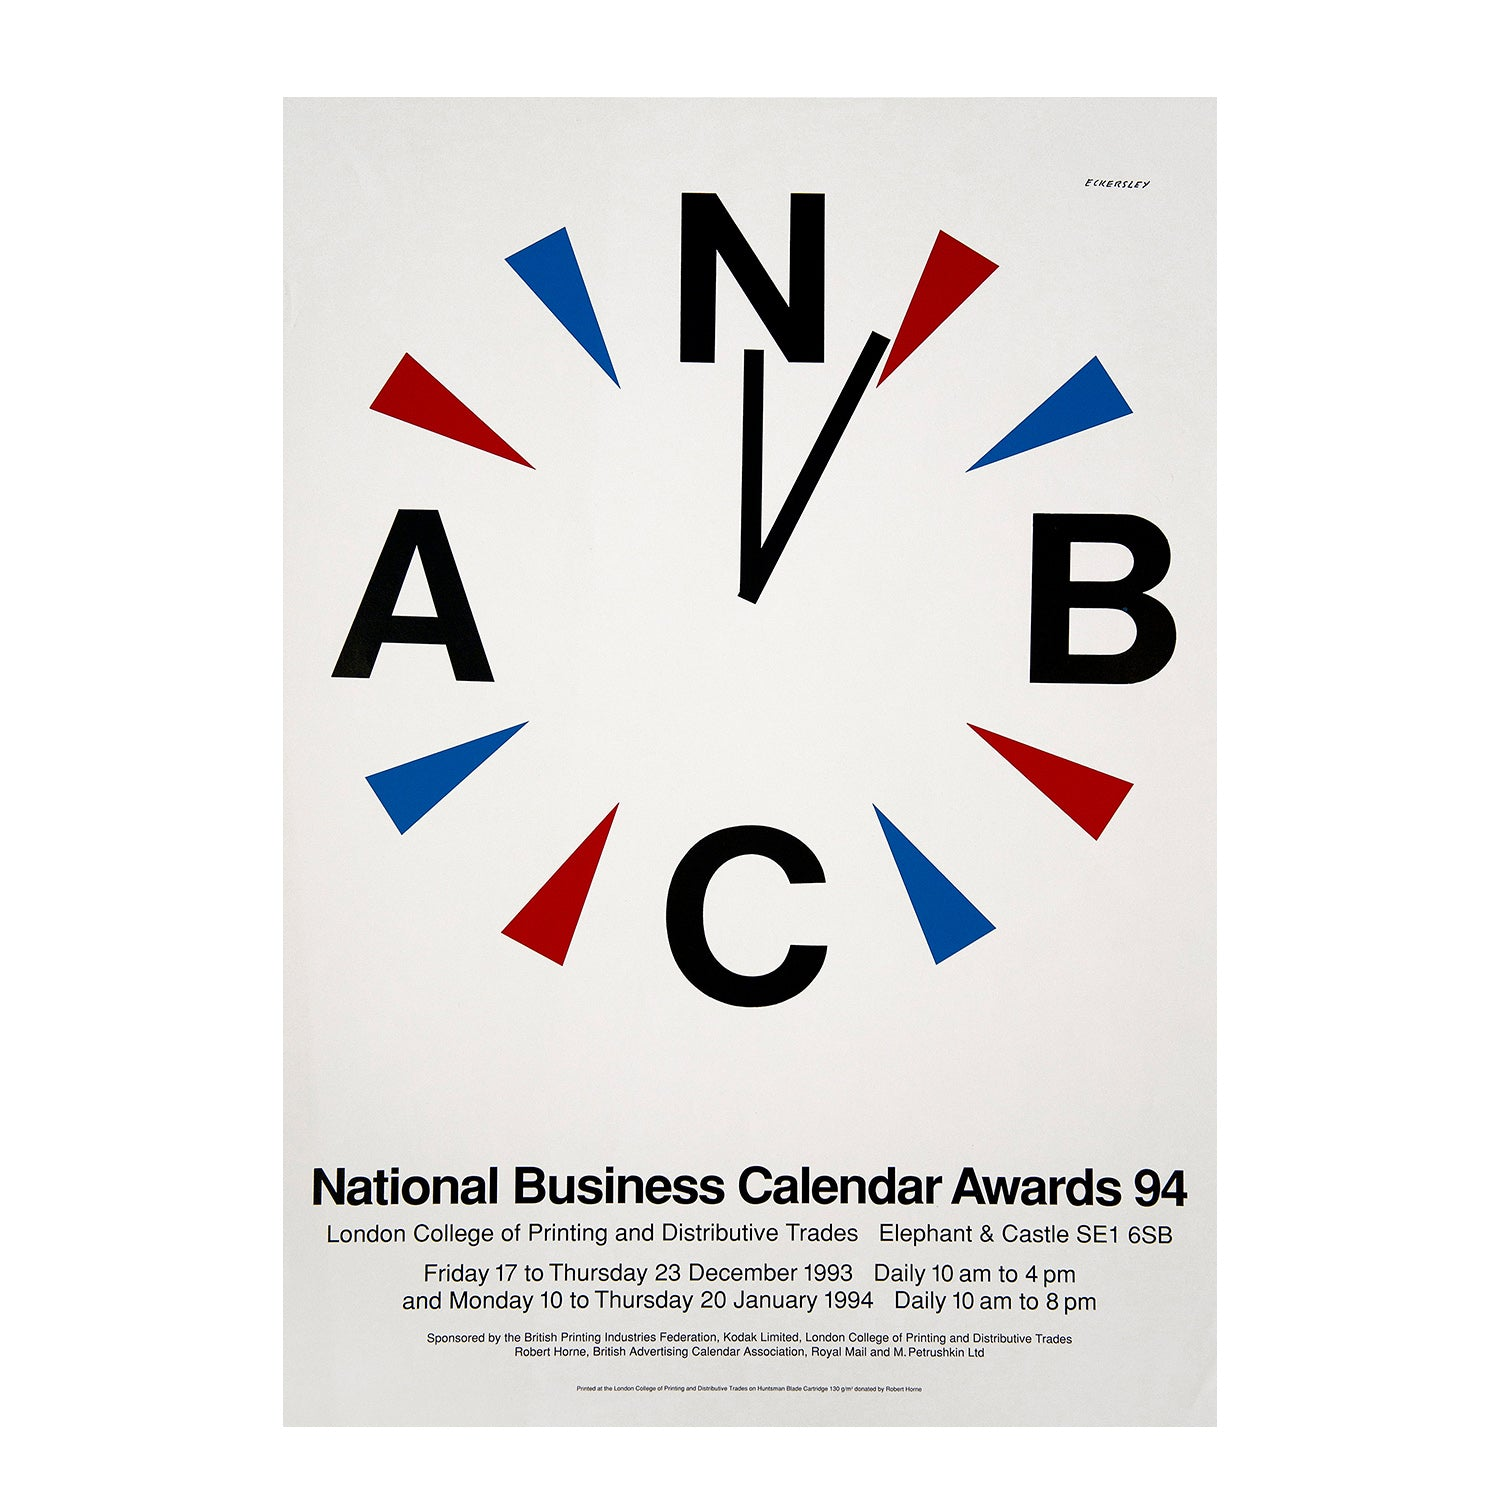 National Business Calendar Awards 94